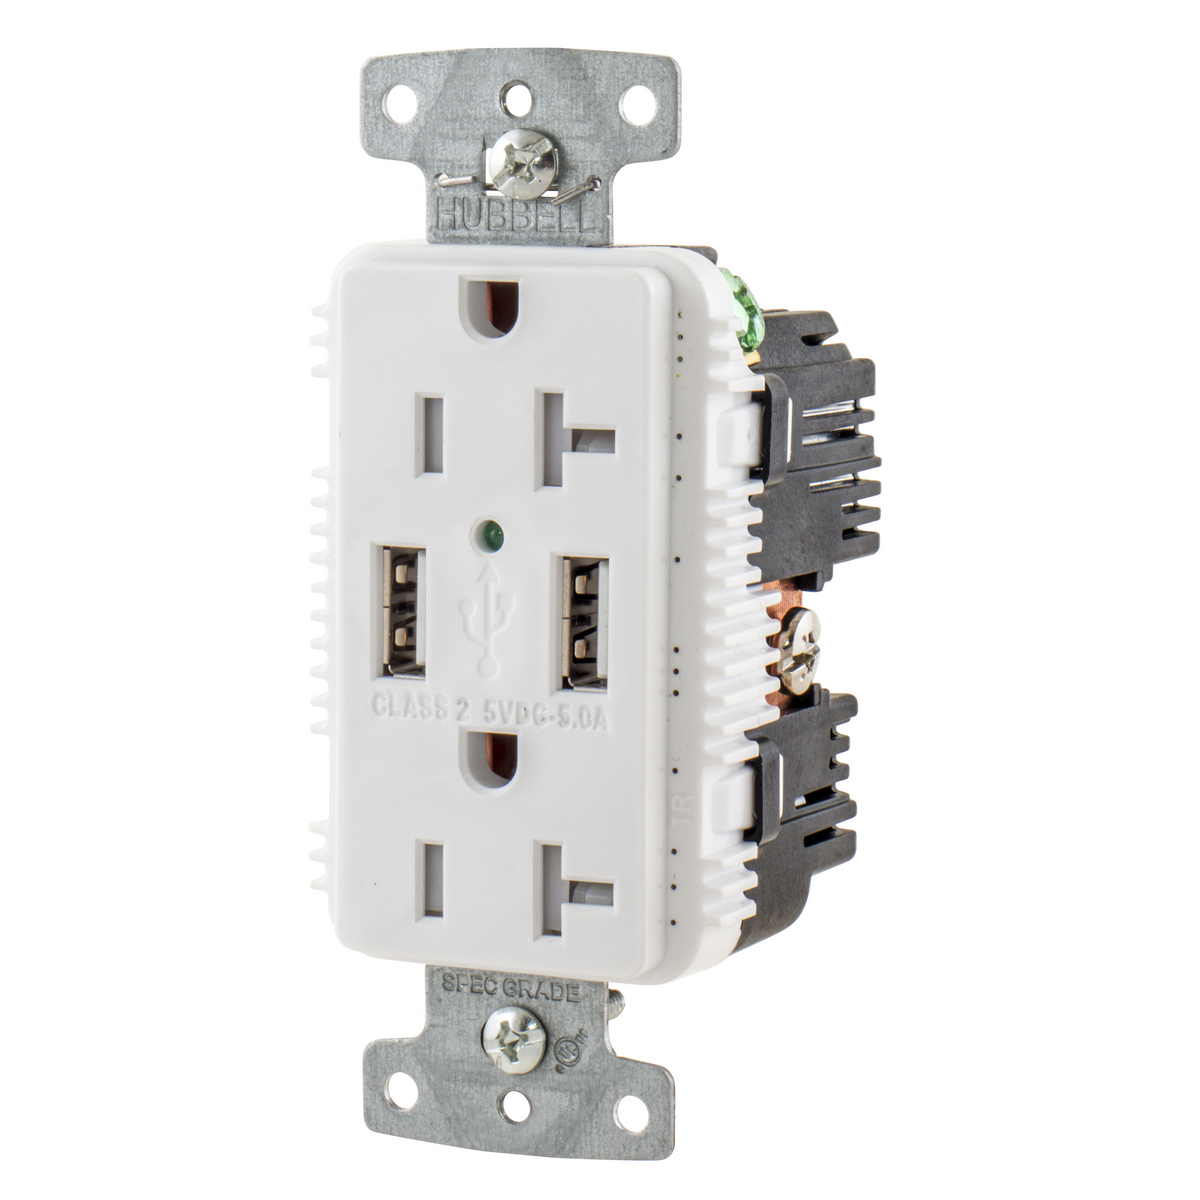 Hubbell Wiring Device-Kellems | Dominion Electric on hubbell lighting, hubbell twist lock, hubbell raceway, hubbell 30 amp connector, hubbell 320 connector, hubbell fire rated poke through, twist lock devices, hubbell electric motors, hubbell floor box covers, flir devices, infinity devices,